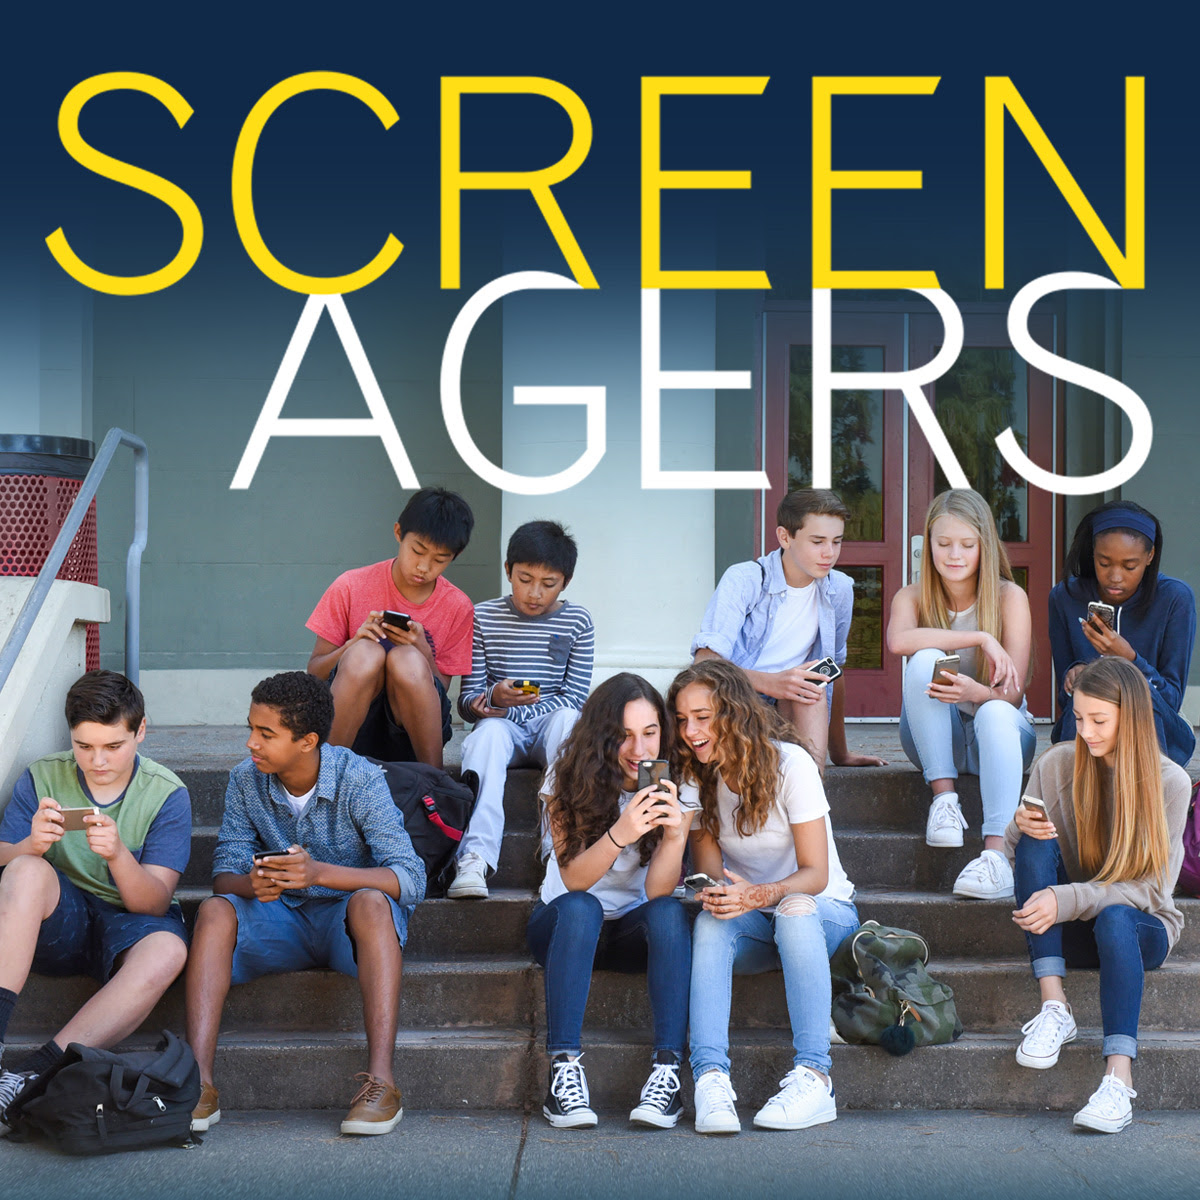 Screenagers Film Presented By Cottage Lake Elementary PTA